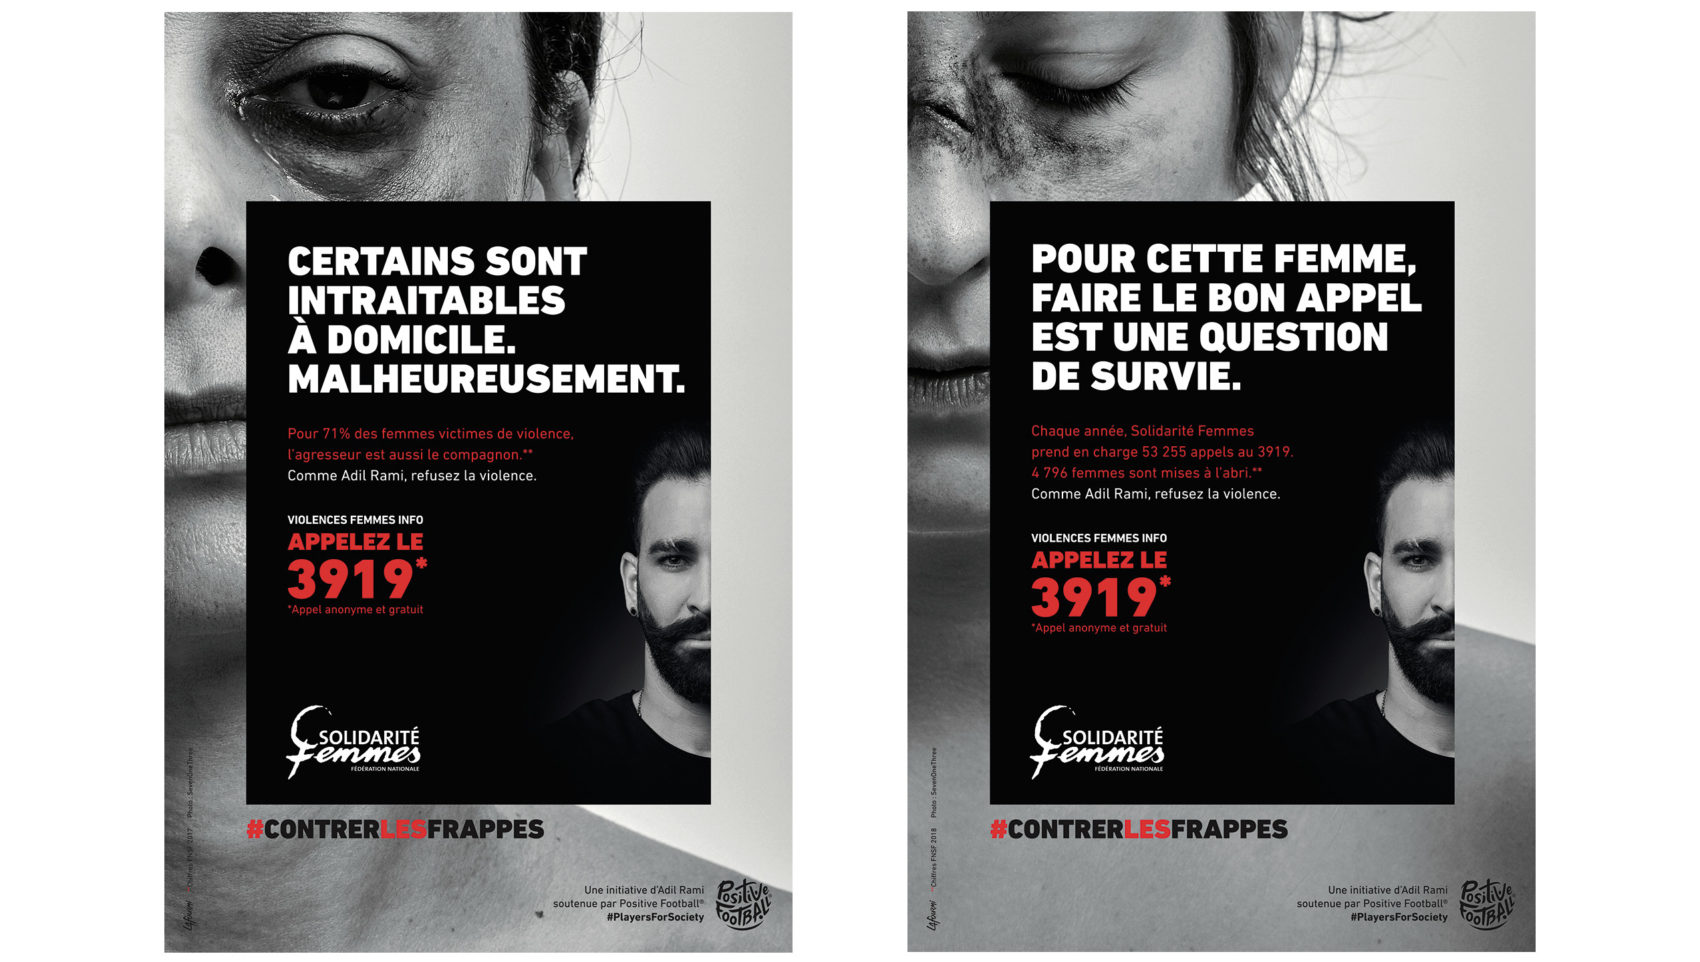 Projet_Positive_Football_Campagne_campaign_Violences_Adil_Rami_#CONTRERLESFRAPPES_3